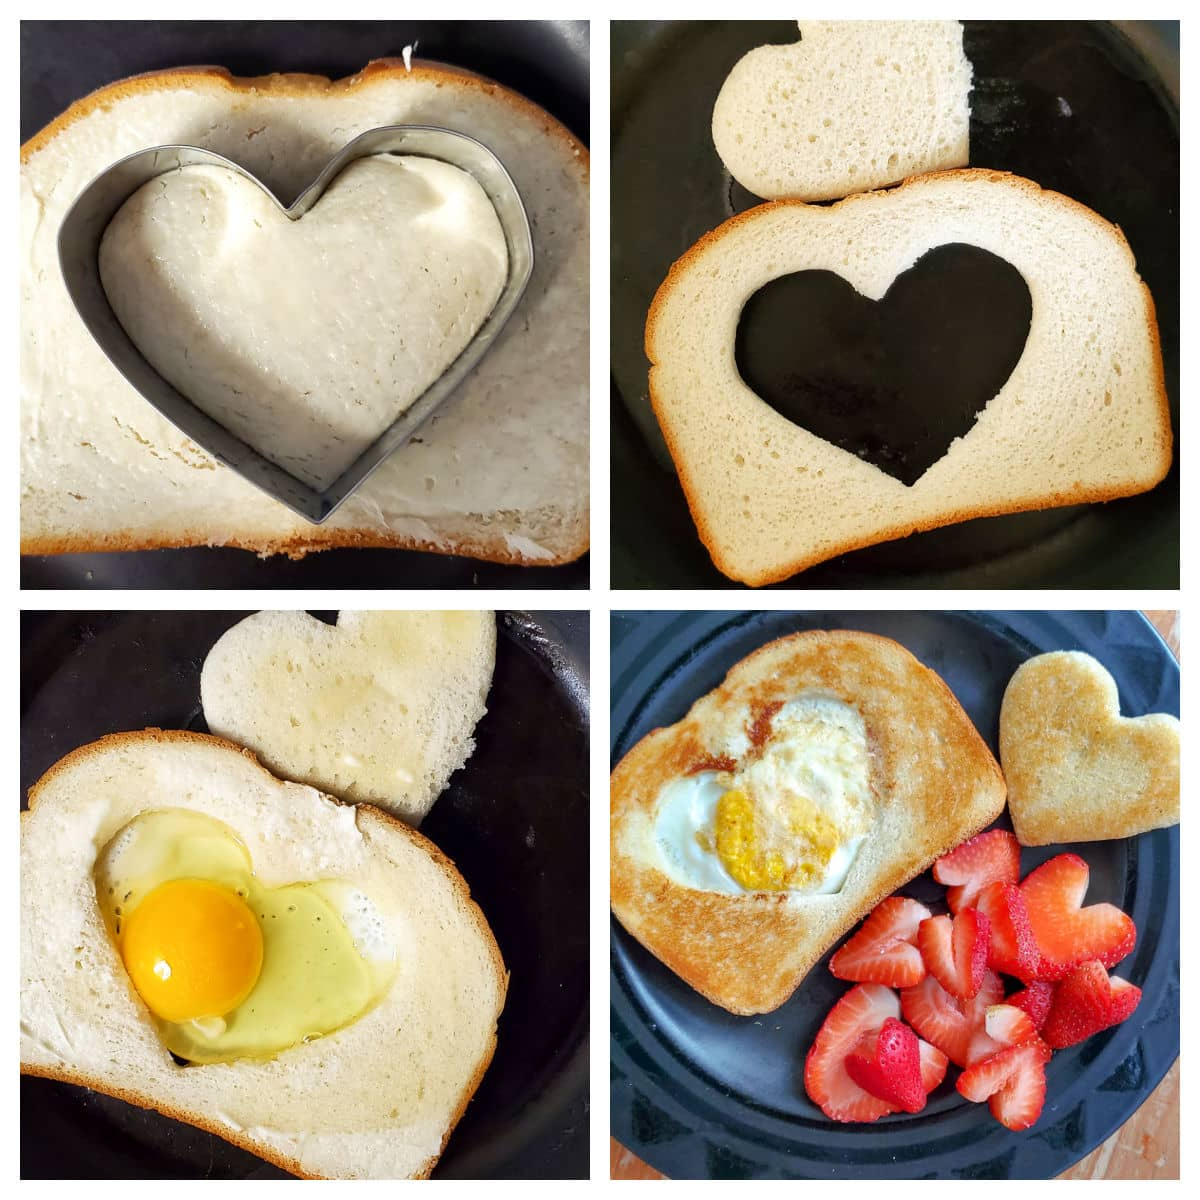 collage image showing the steps to make a heart egg in a hole - cutting the bread, frying the eggs, and the finished product